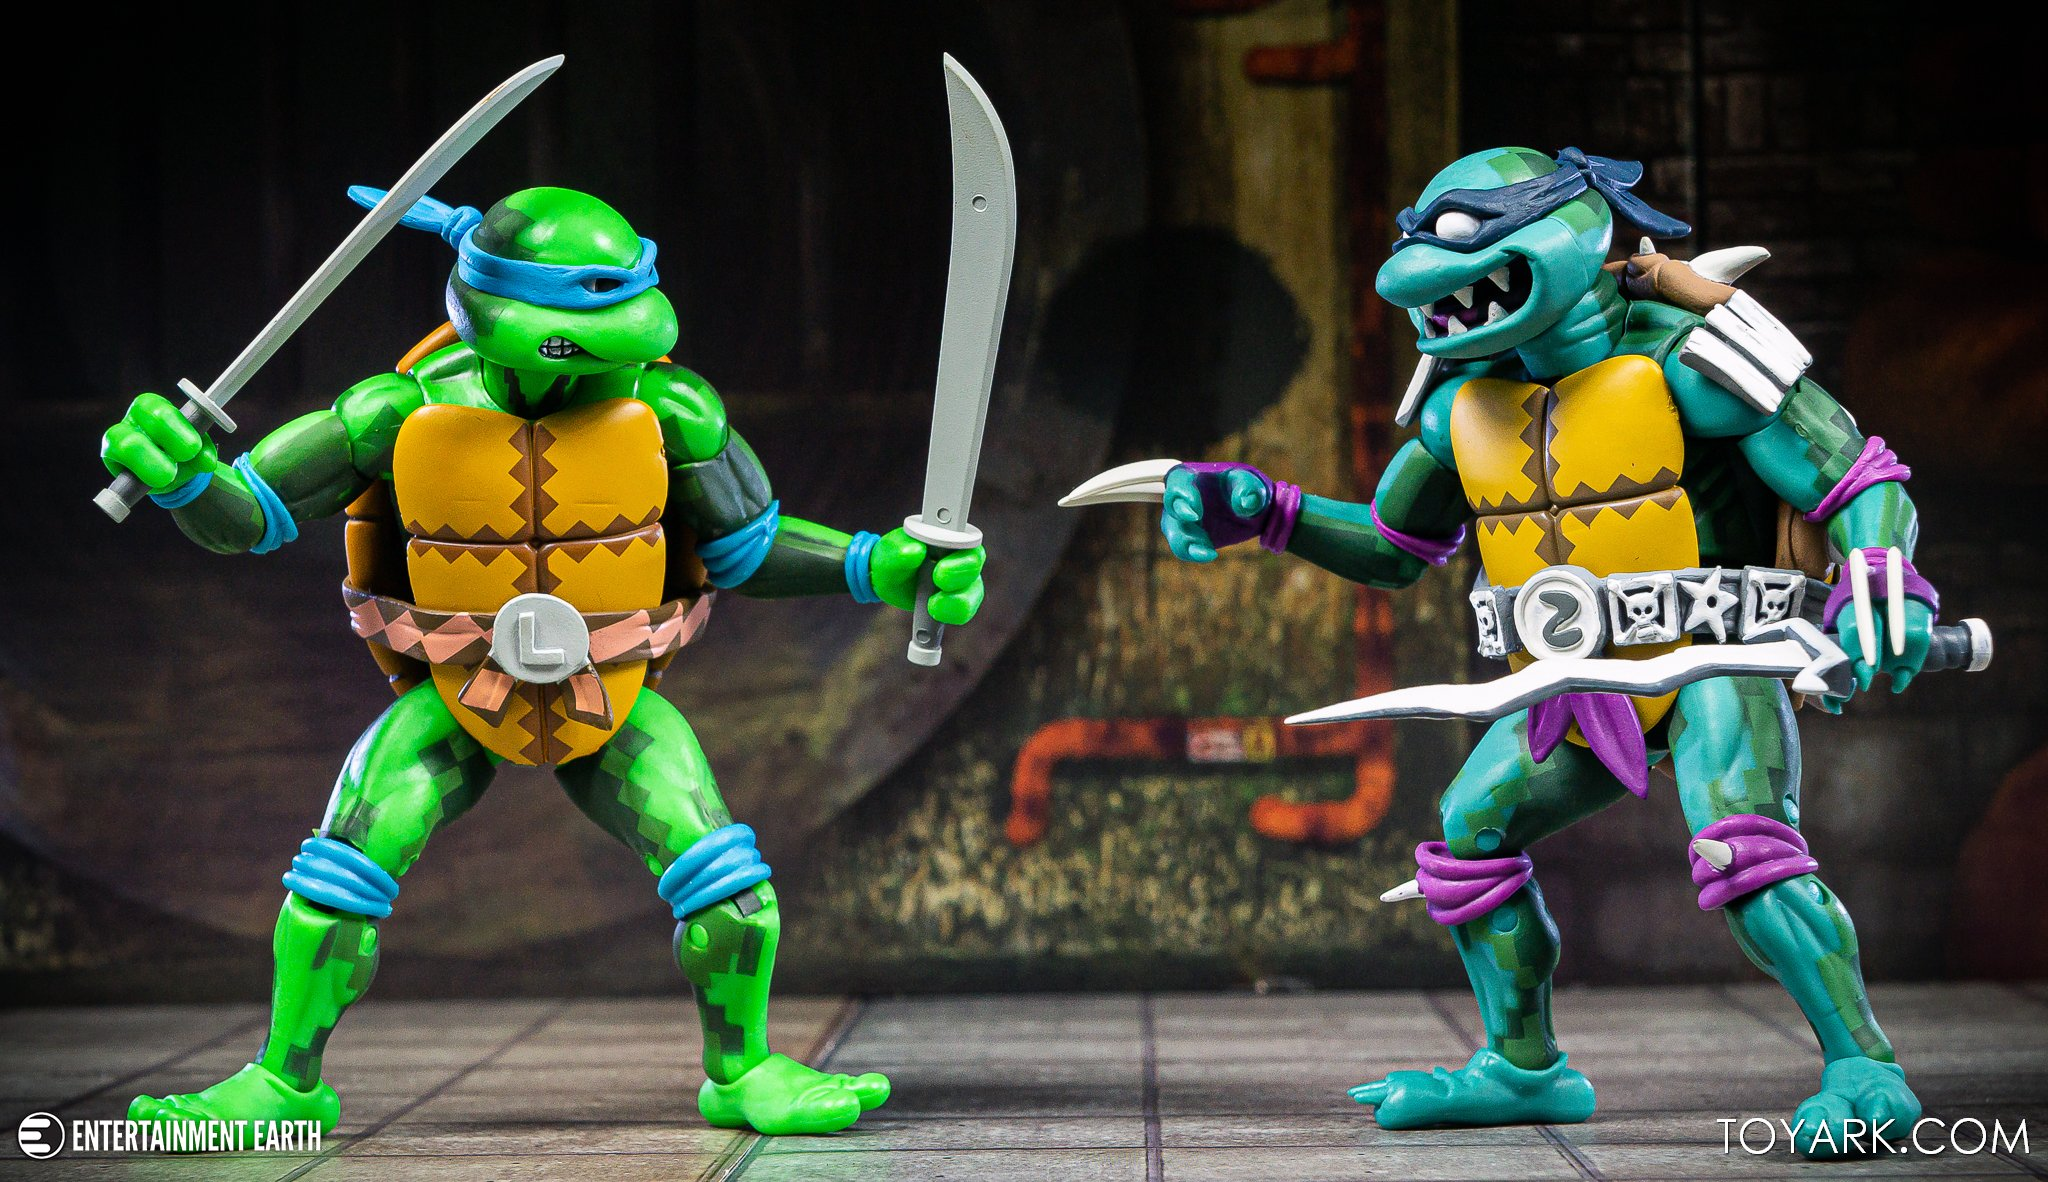 https://news.toyark.com/wp-content/uploads/sites/4/2020/06/NECA-TMNT-Turtles-In-Time-S1-083.jpg